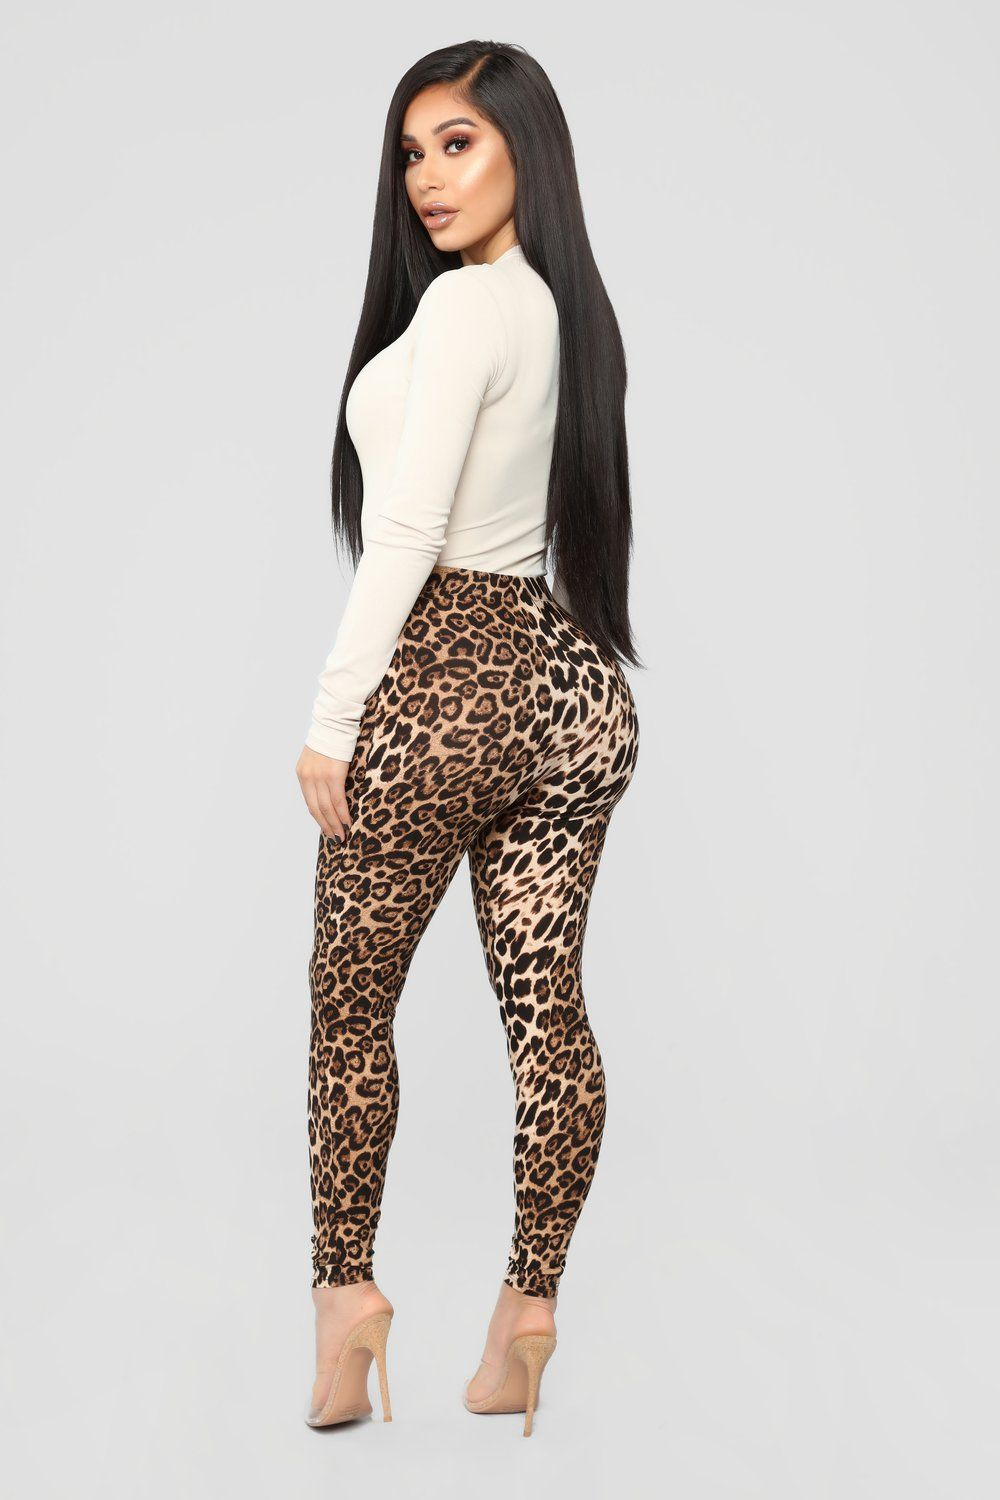 f9dda26e50b8e3 Available In Leopard High Waisted Leggings Leopard Print 95% Polyester 5%  Spandex Made In USA